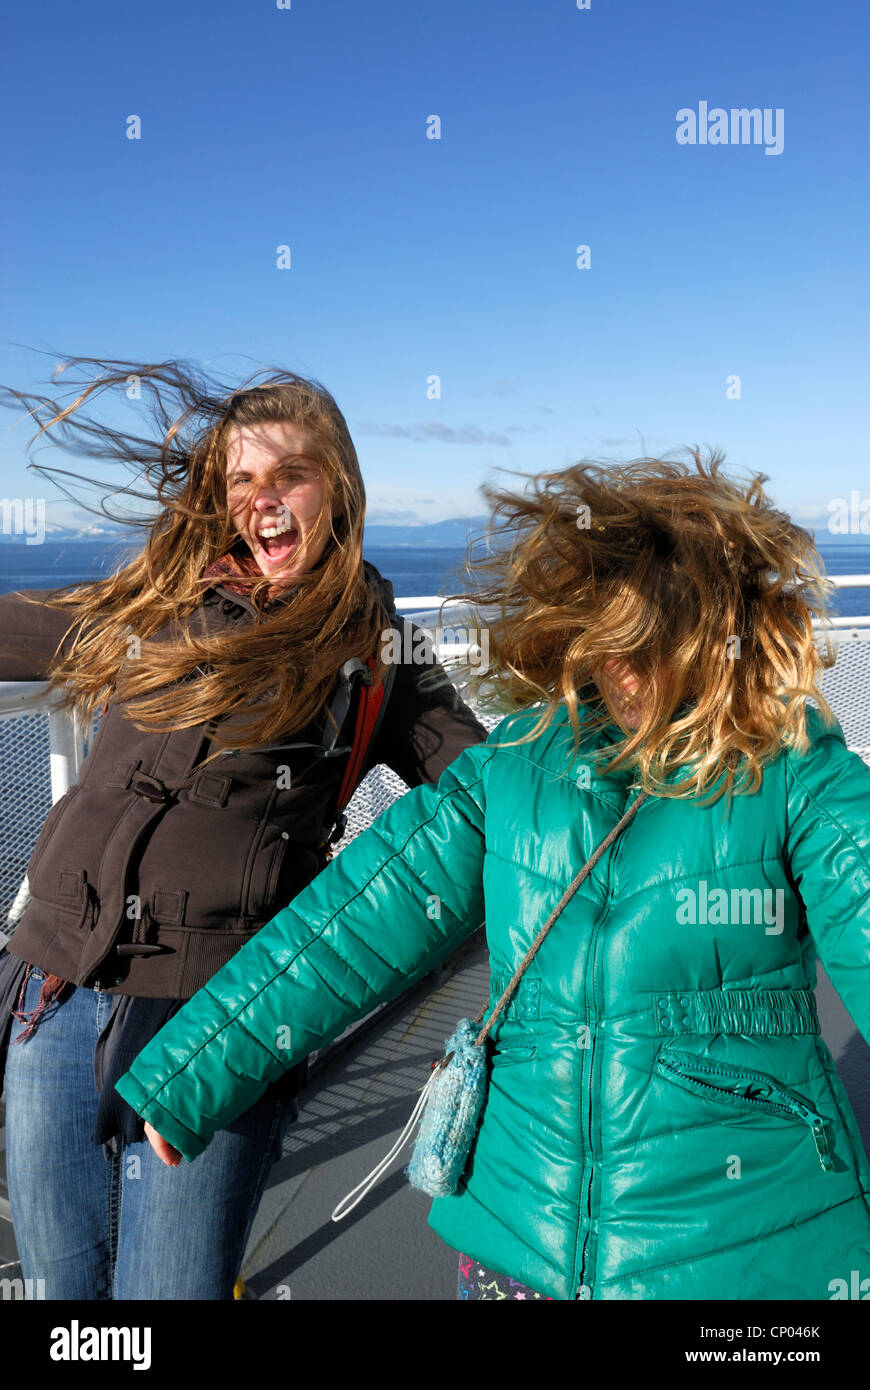 Two females with their hair being blown by the wind during a ferry ride. - Stock Image